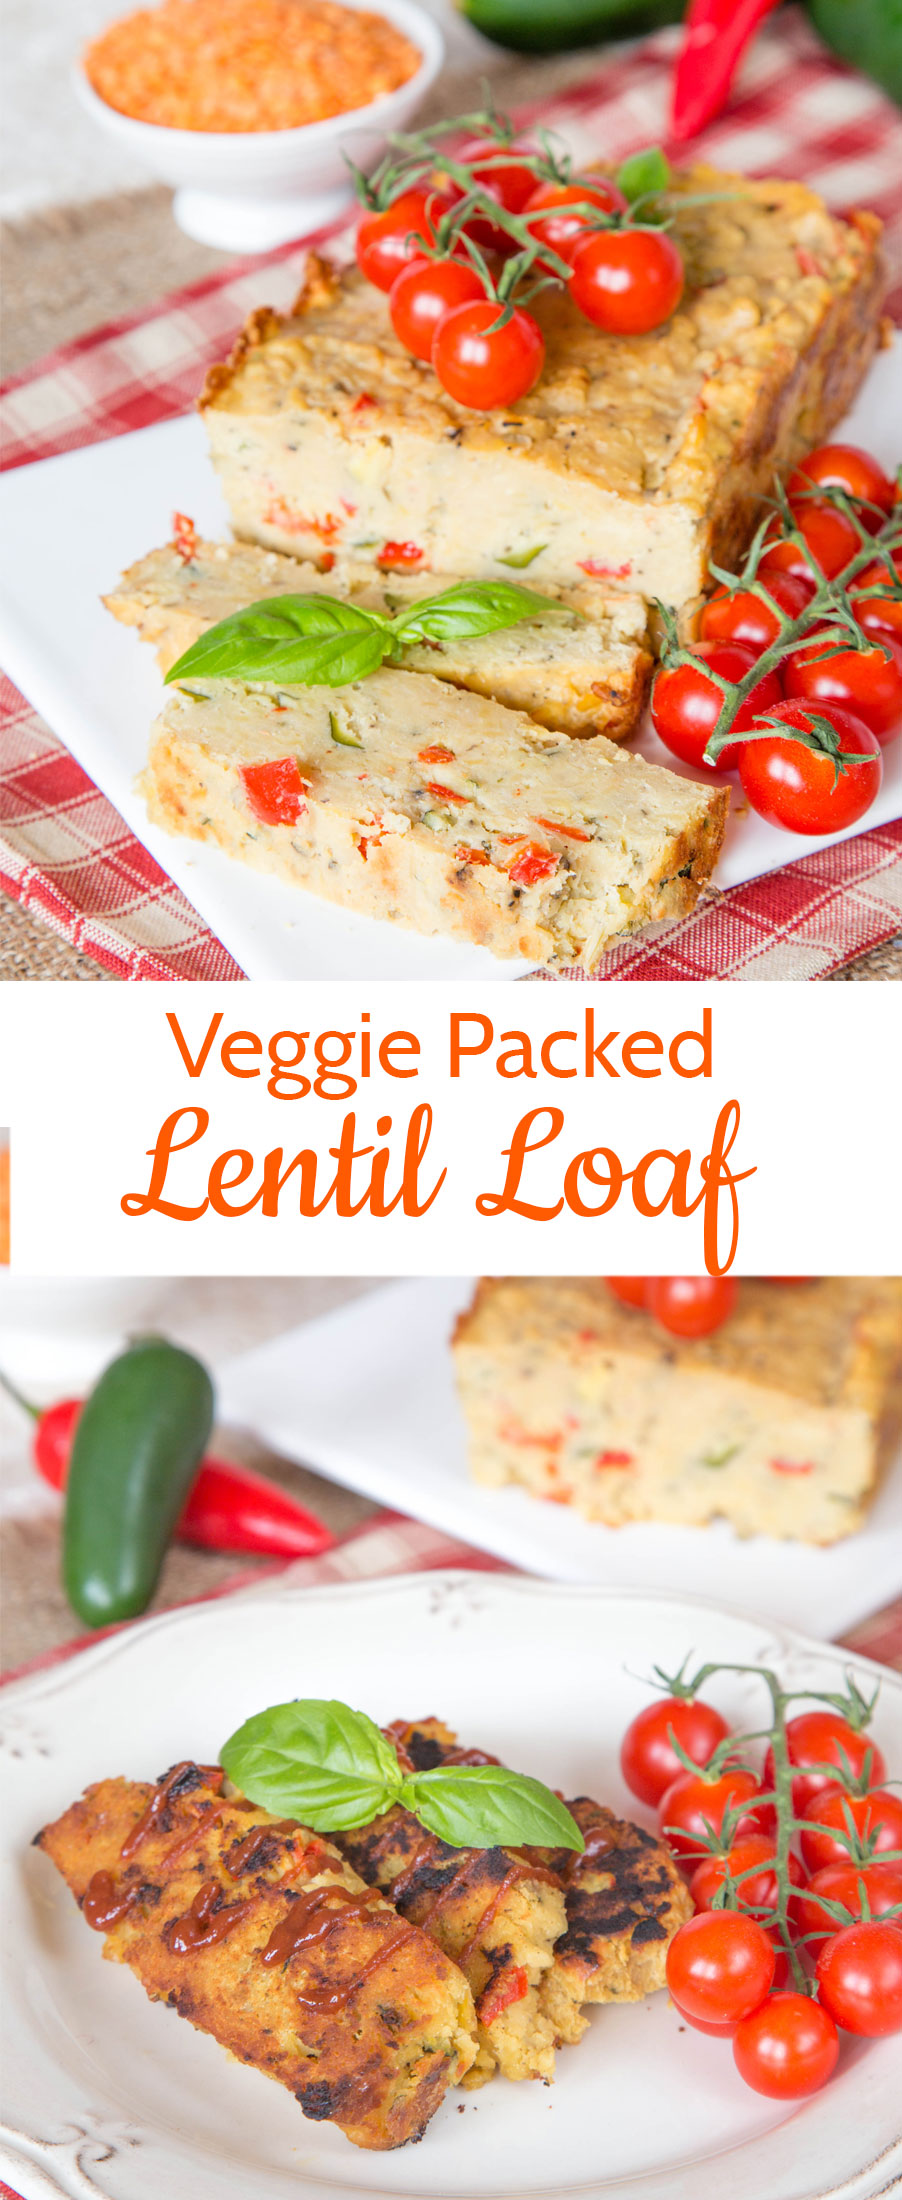 This vegetable packed red lentil loaf is tasty, adaptable and frugal